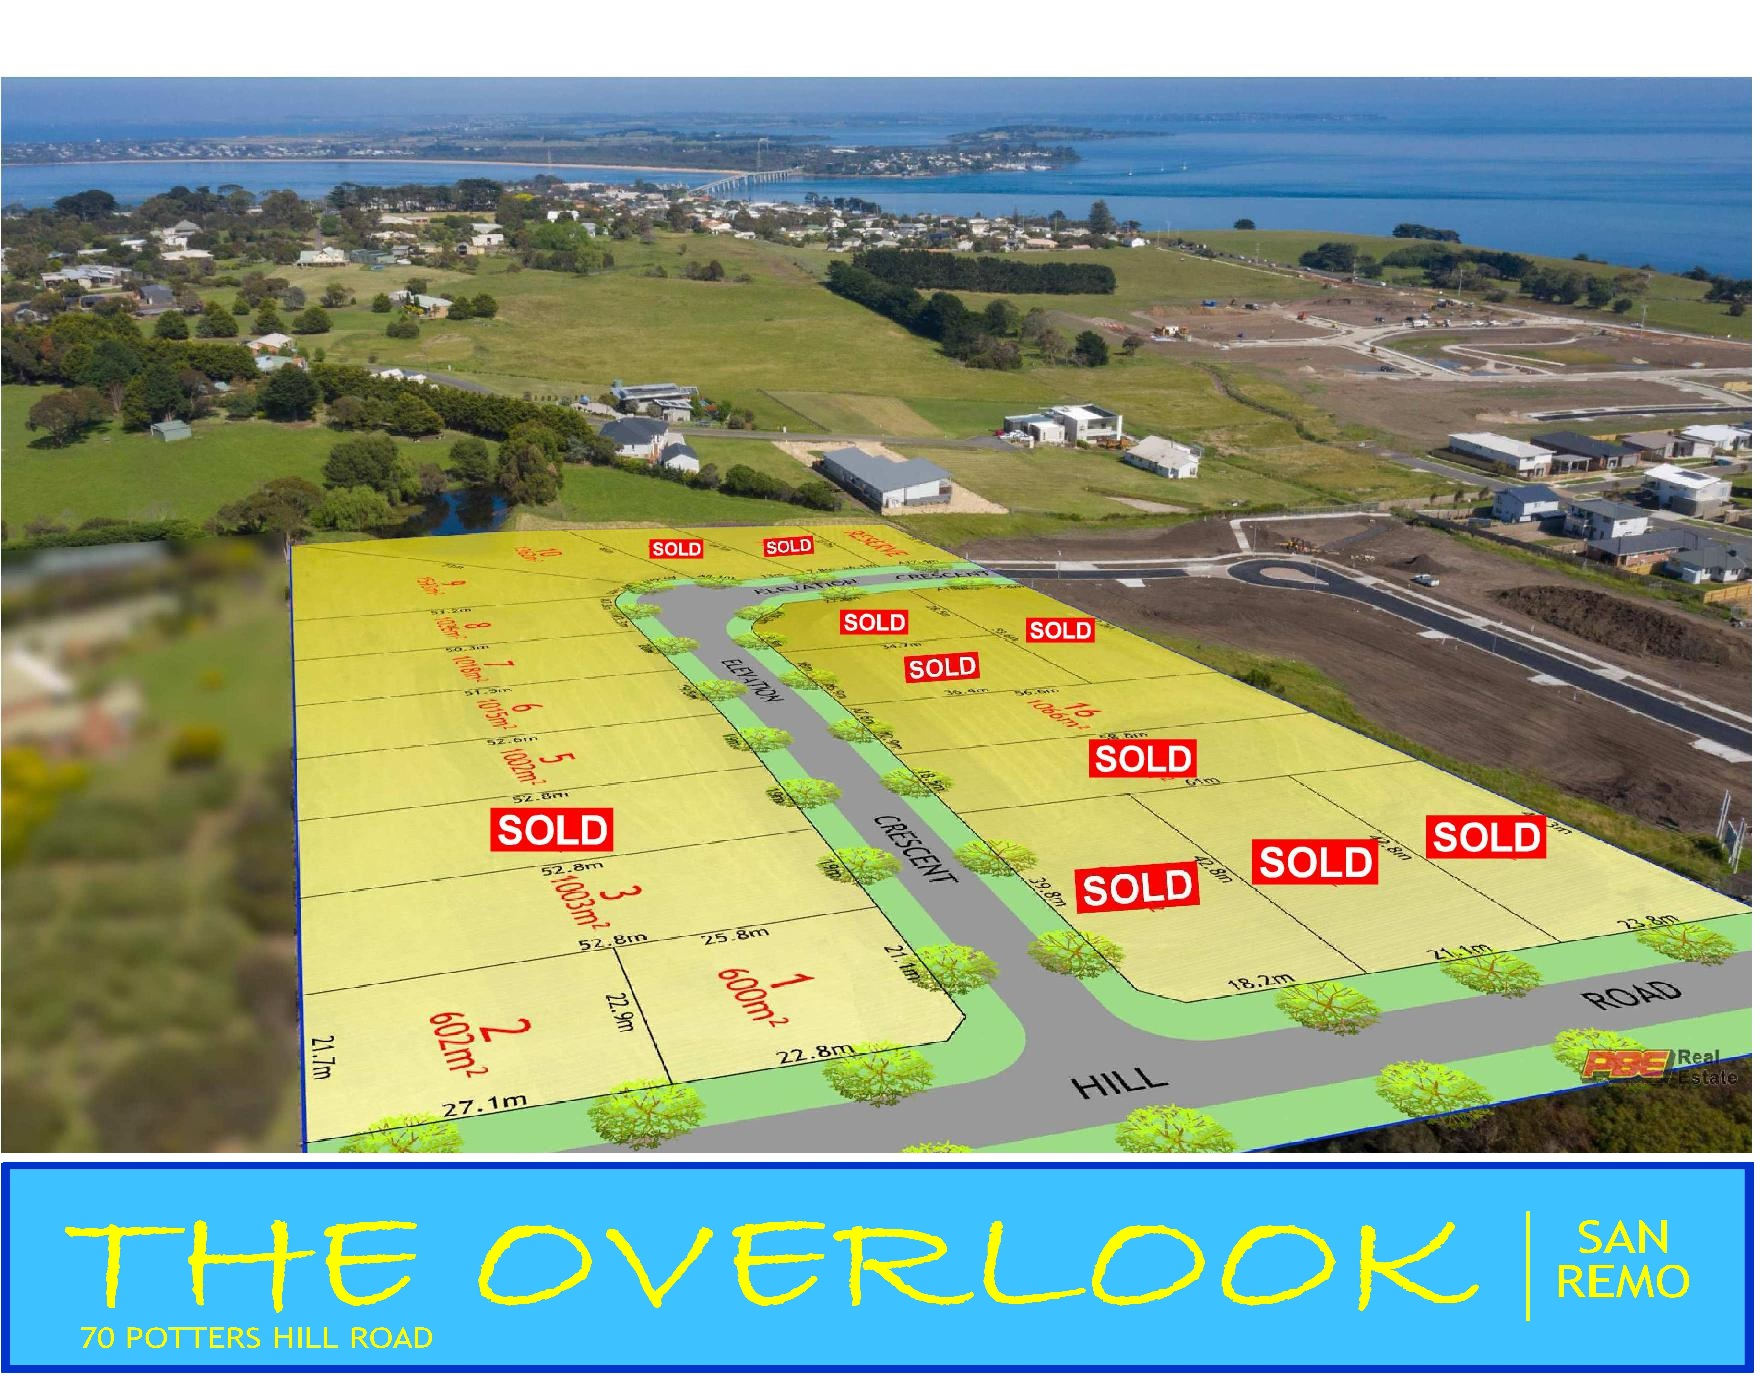 Lot 13/70 Potters Hill Road SAN REMO